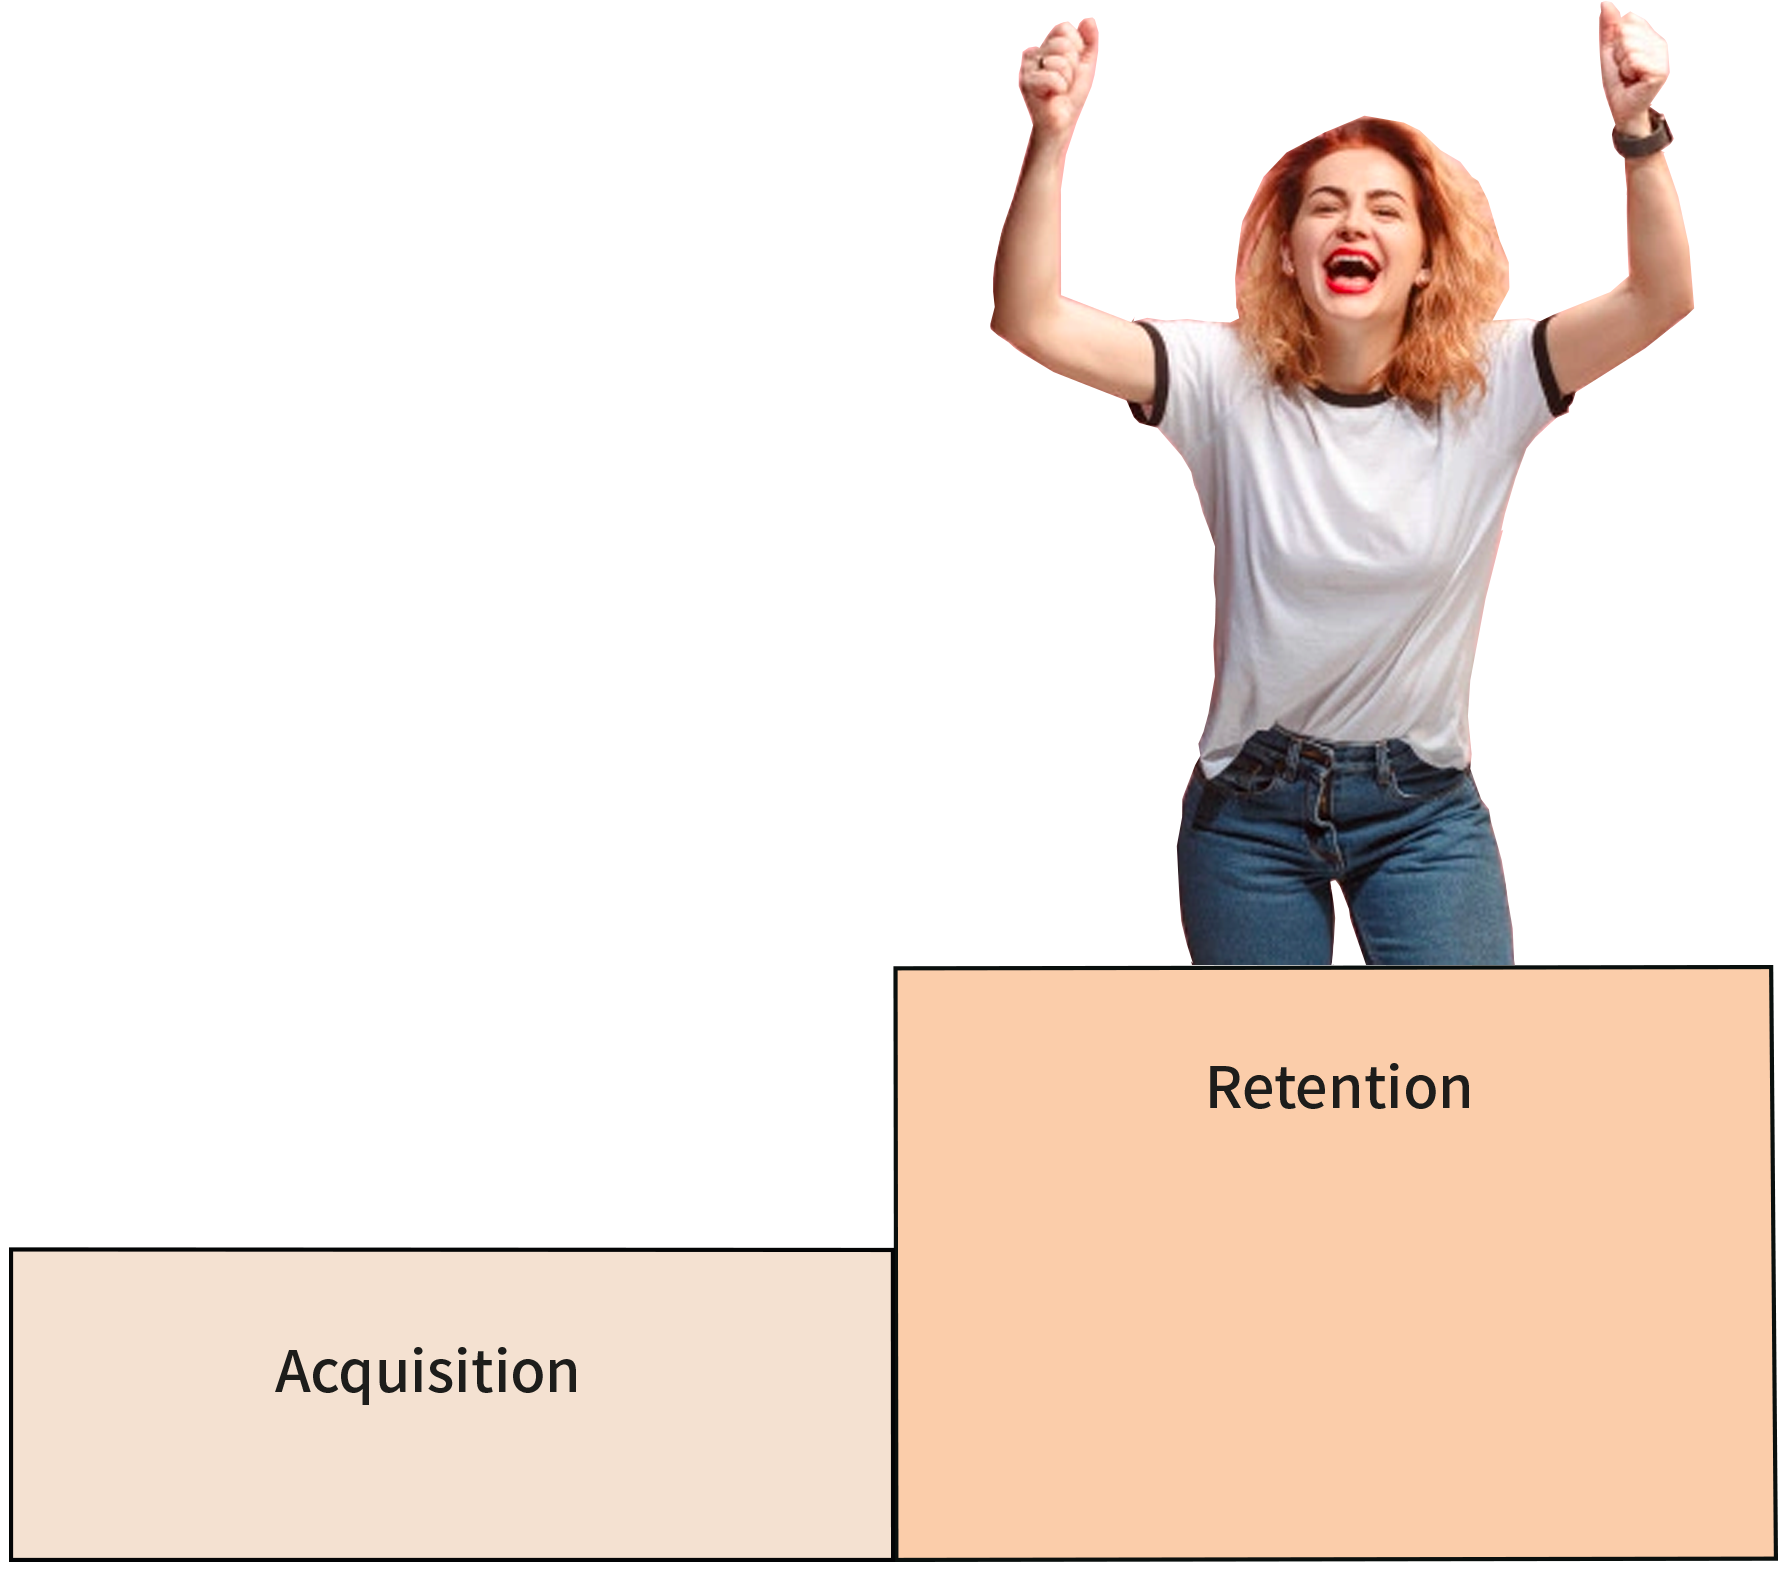 woman cheering for retention